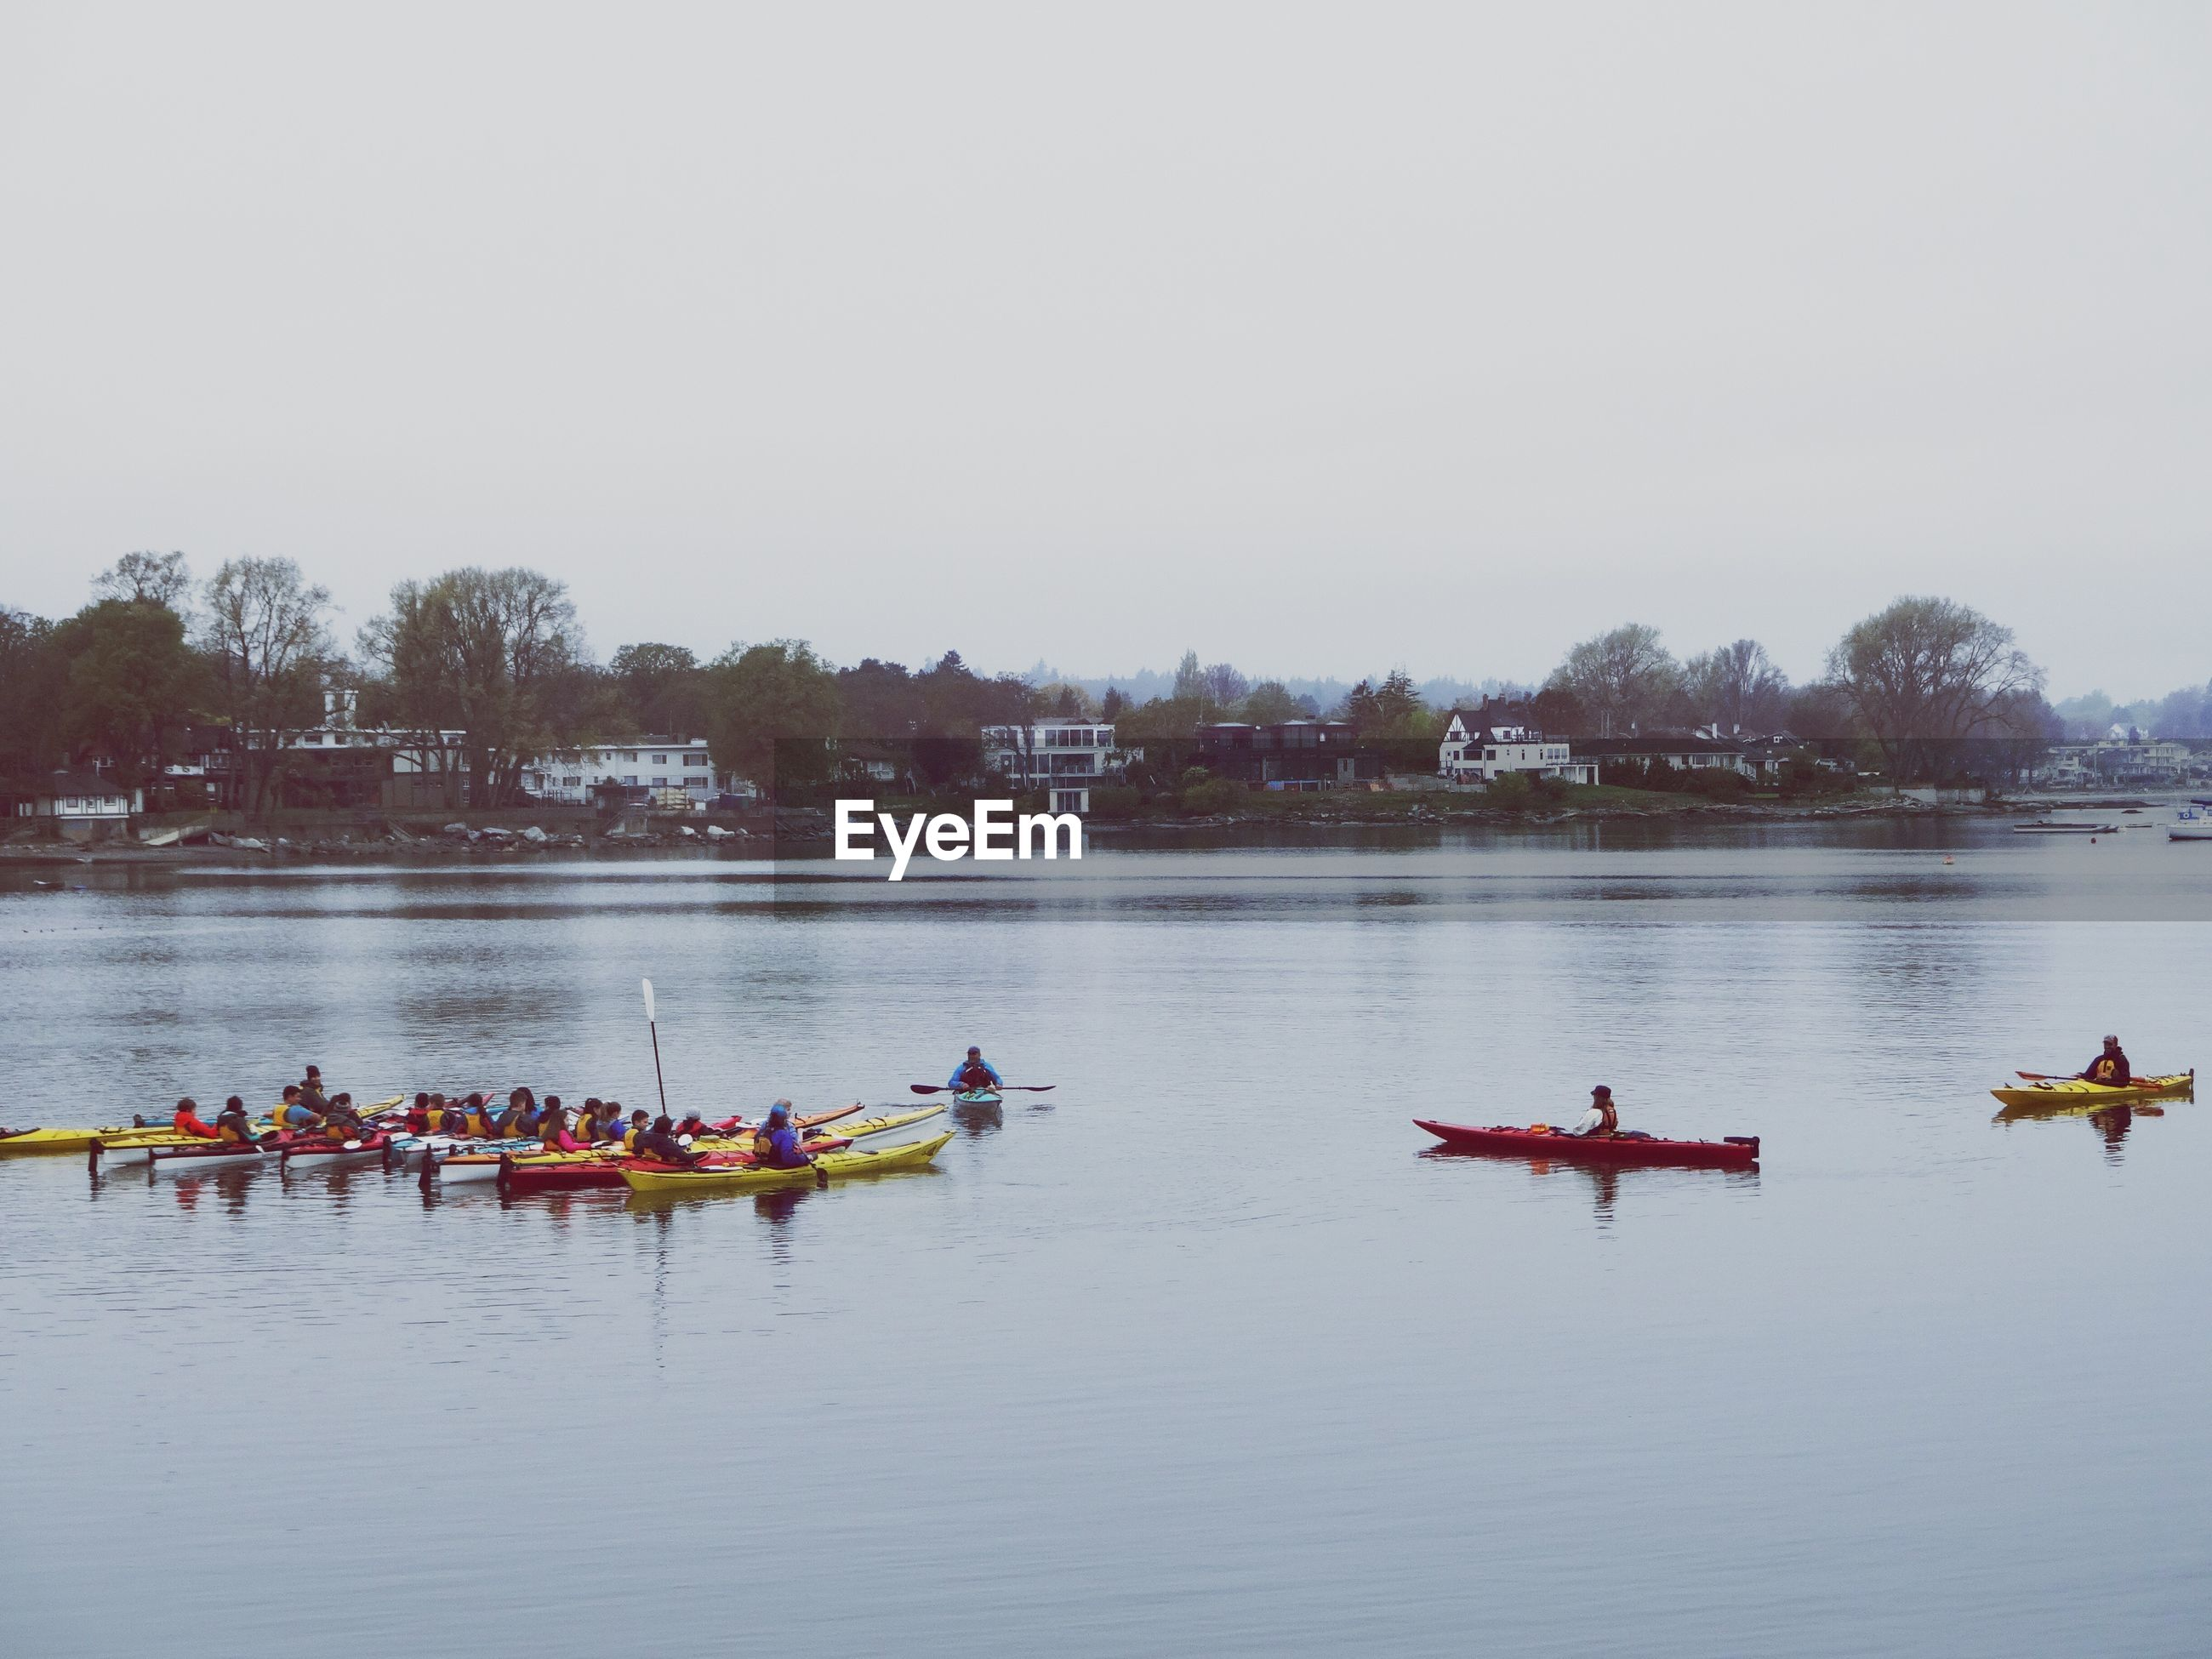 People boating on river against sky